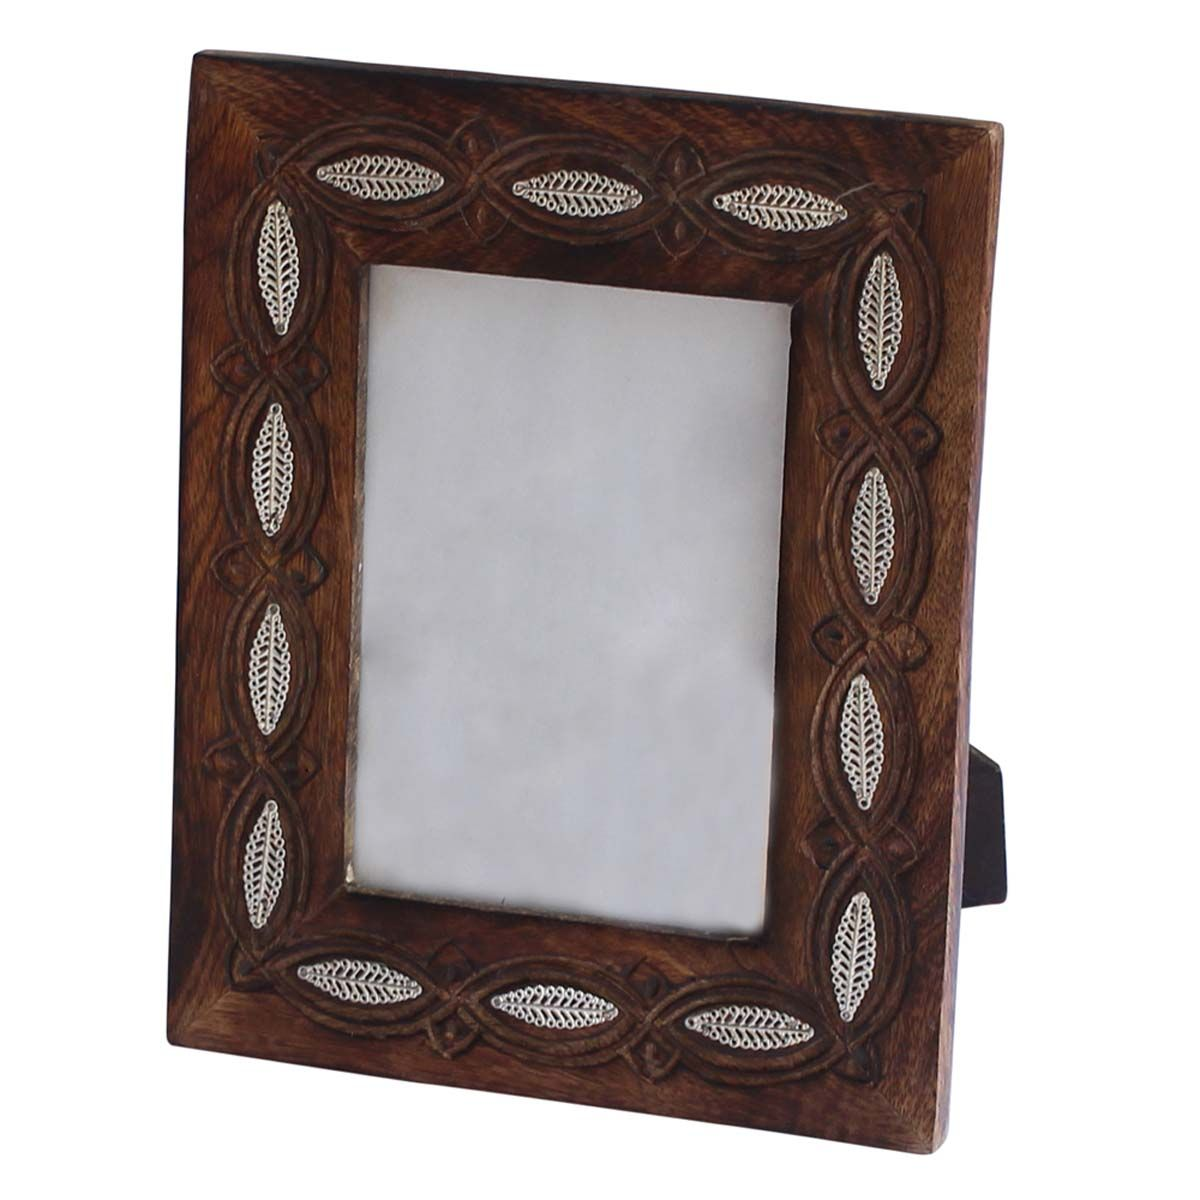 Bulk Wholesale Handmade PictureFrame in Mango-Wood with Carving and ...